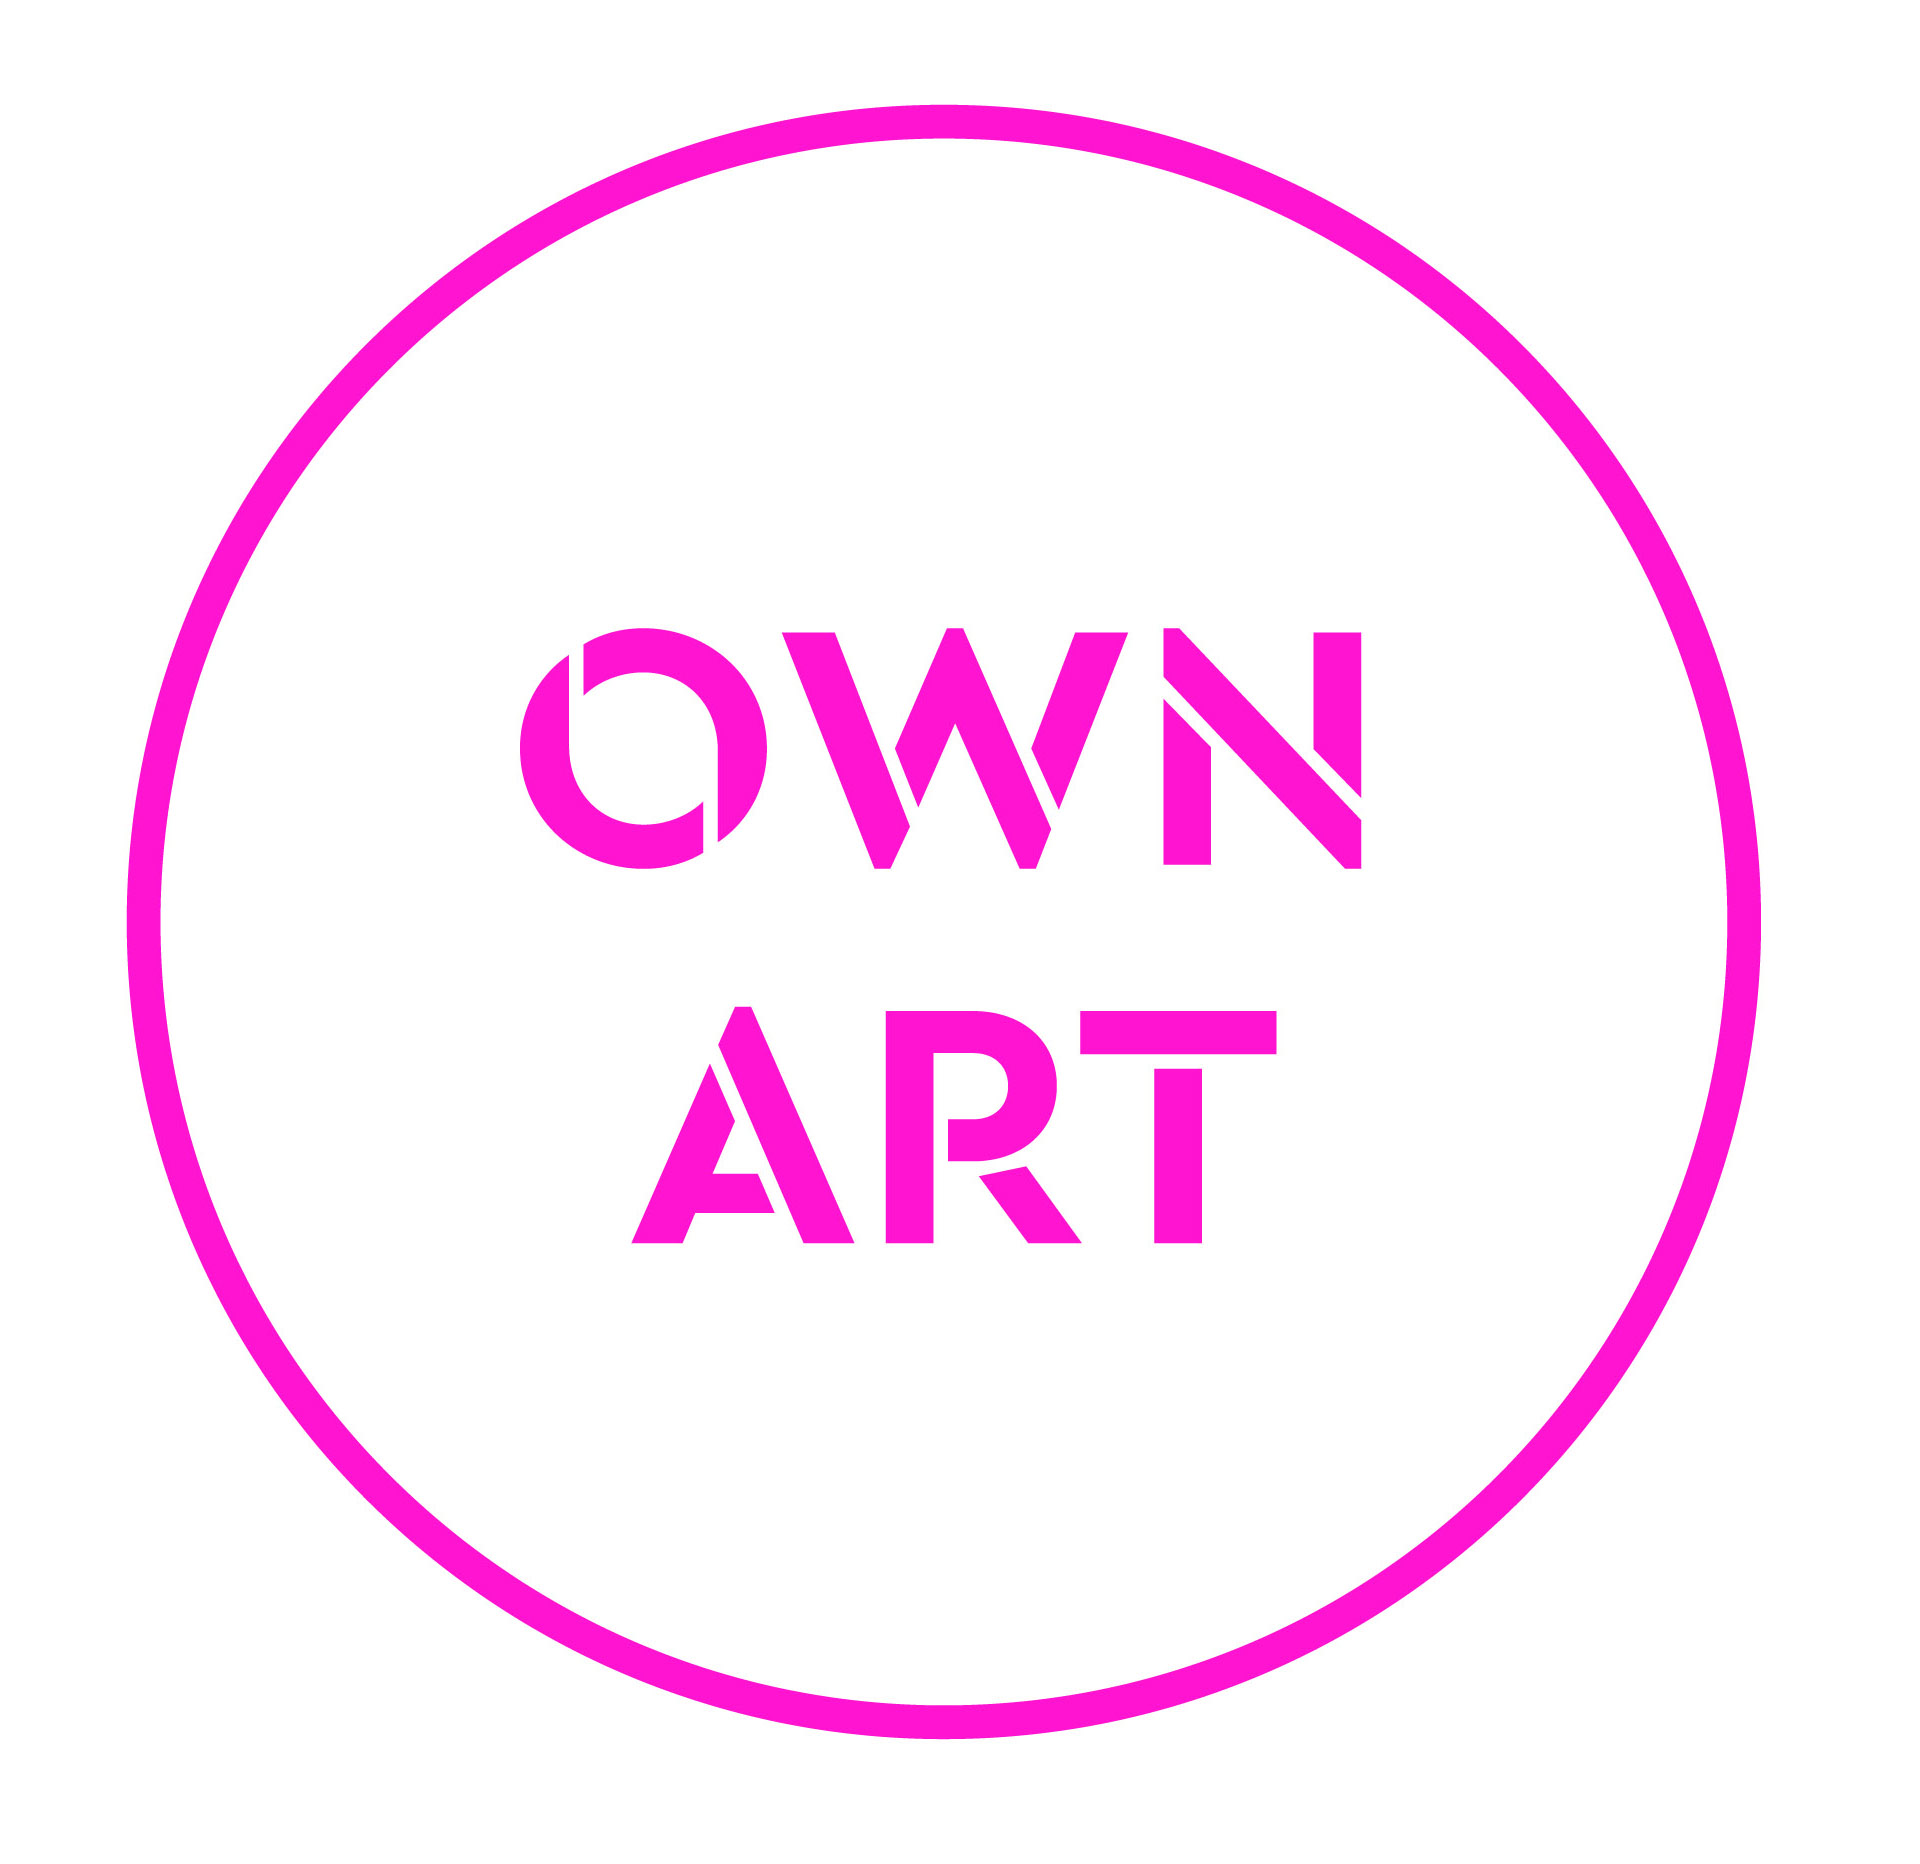 Own Art initiative